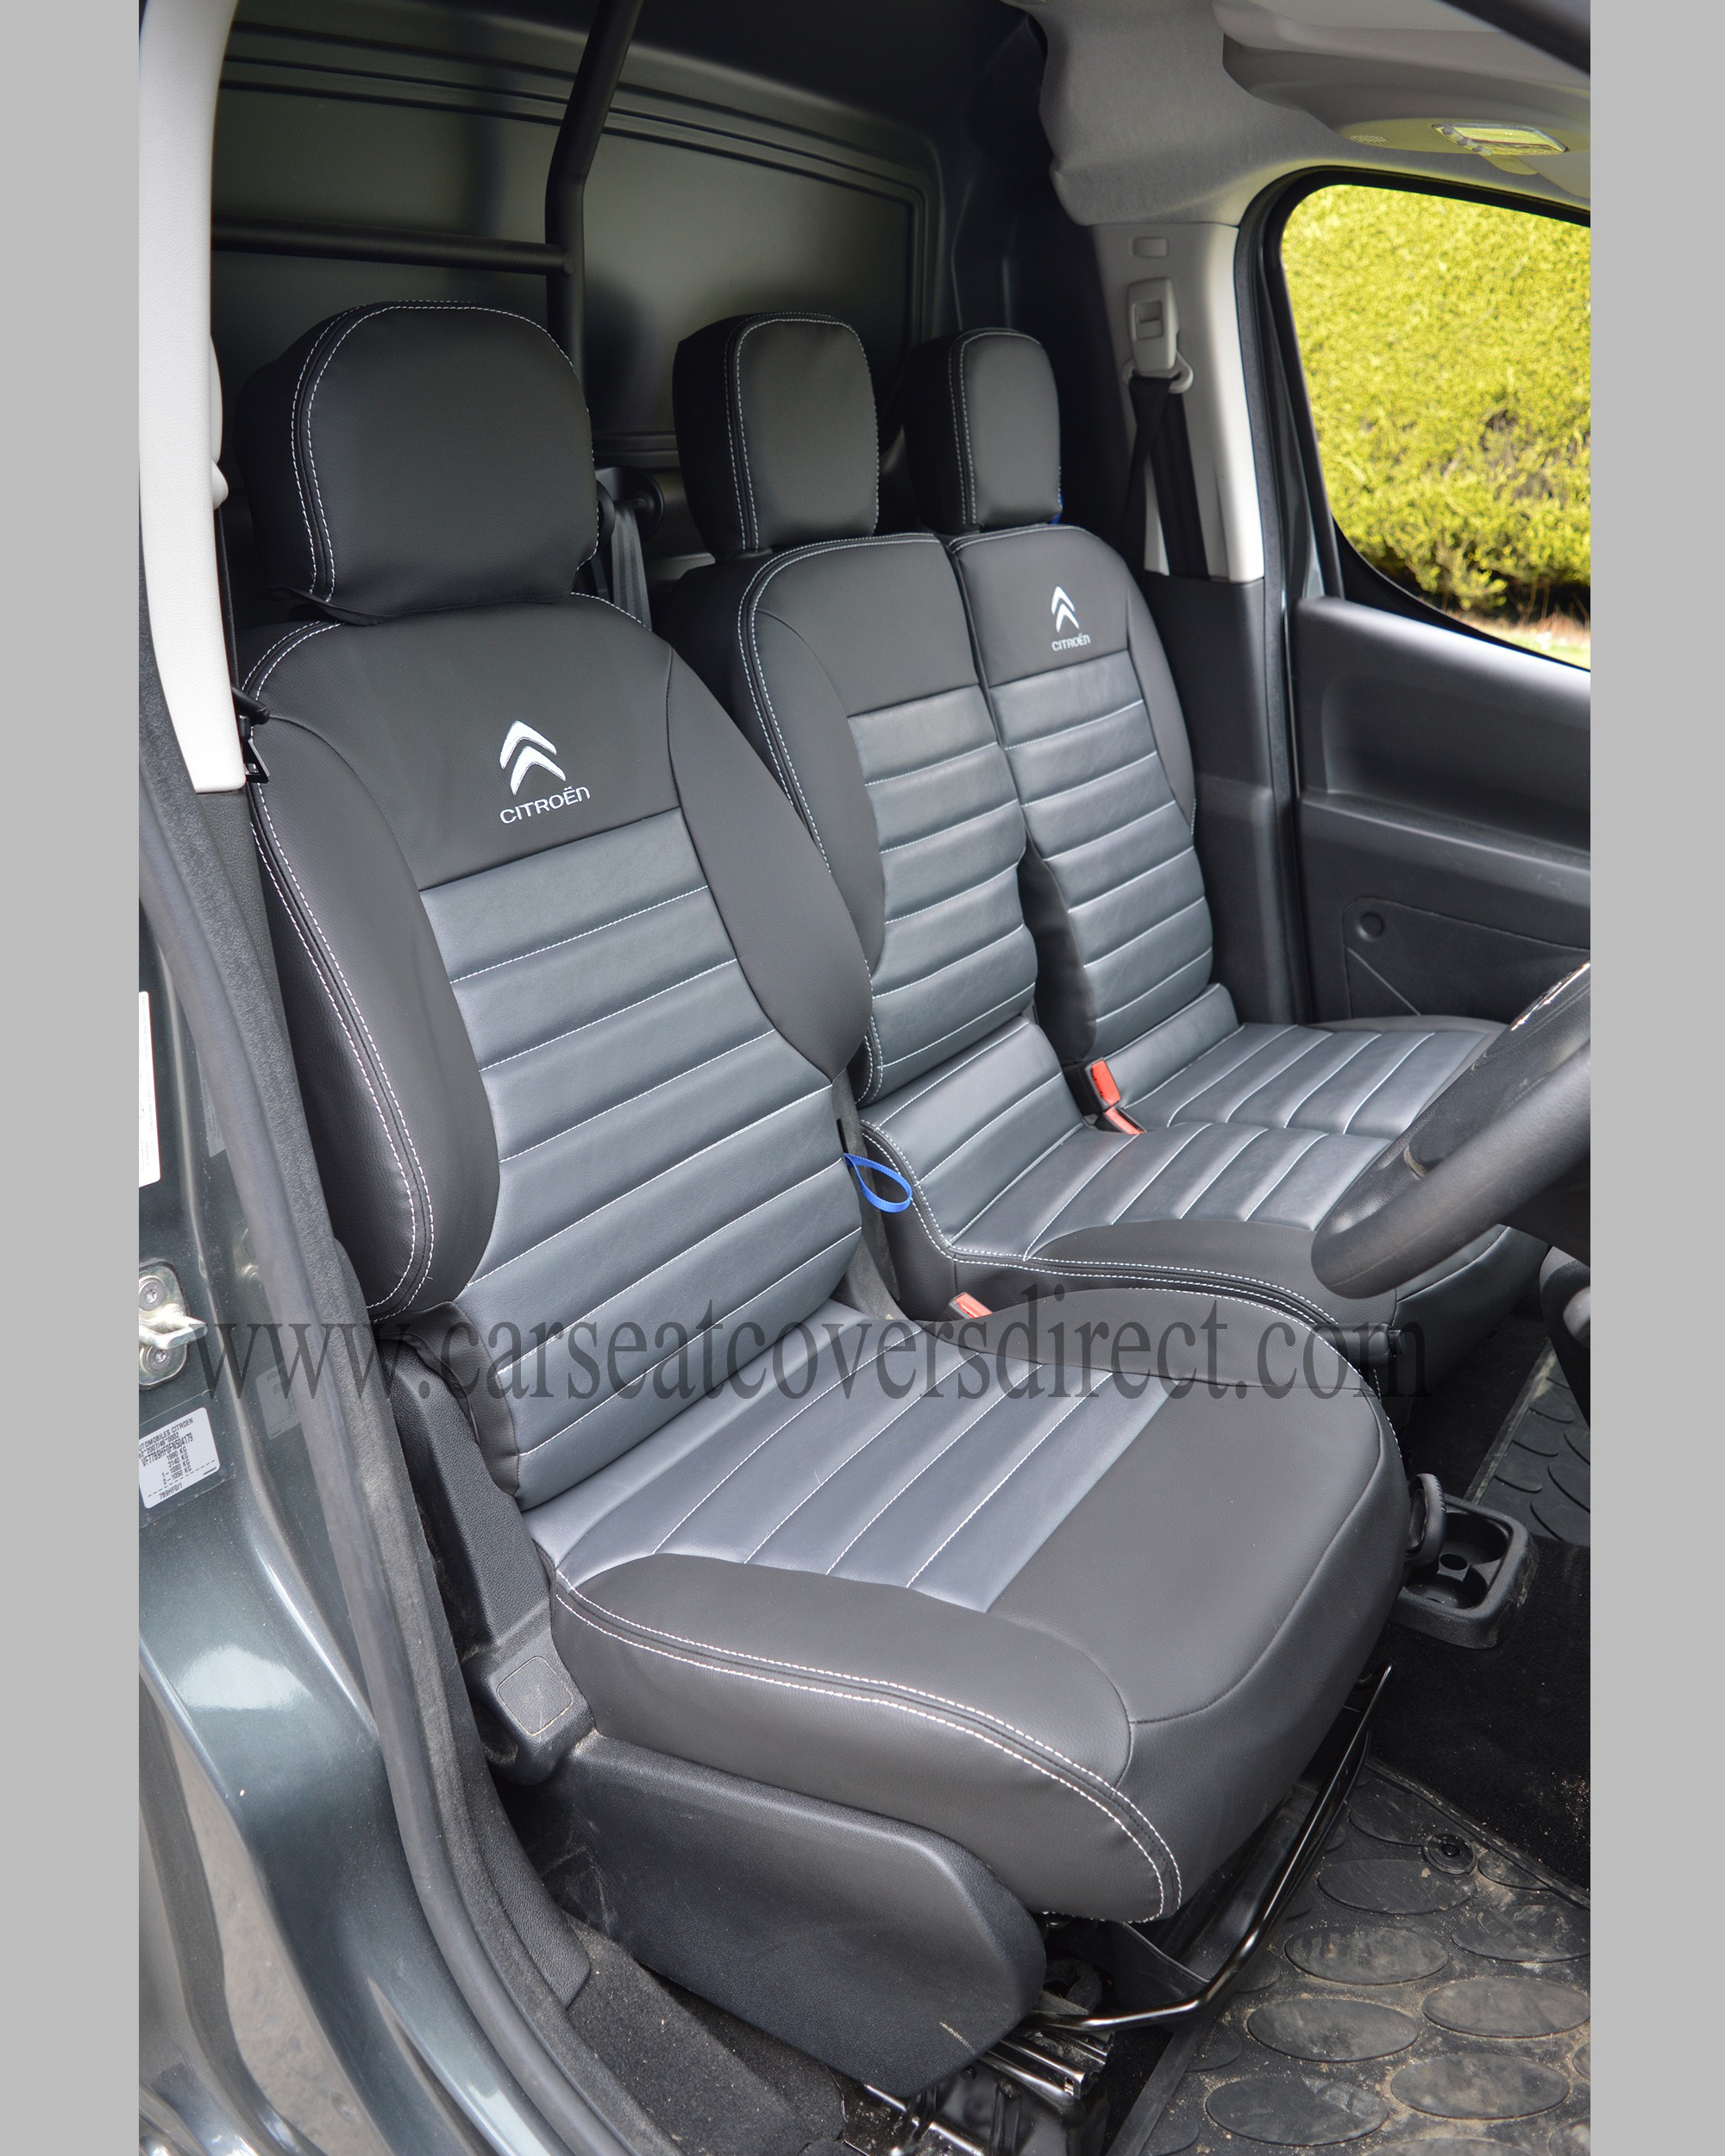 Citroen Berlingo Tailored Quilted Seat Covers - Charcoal & Modena Grey & Logos